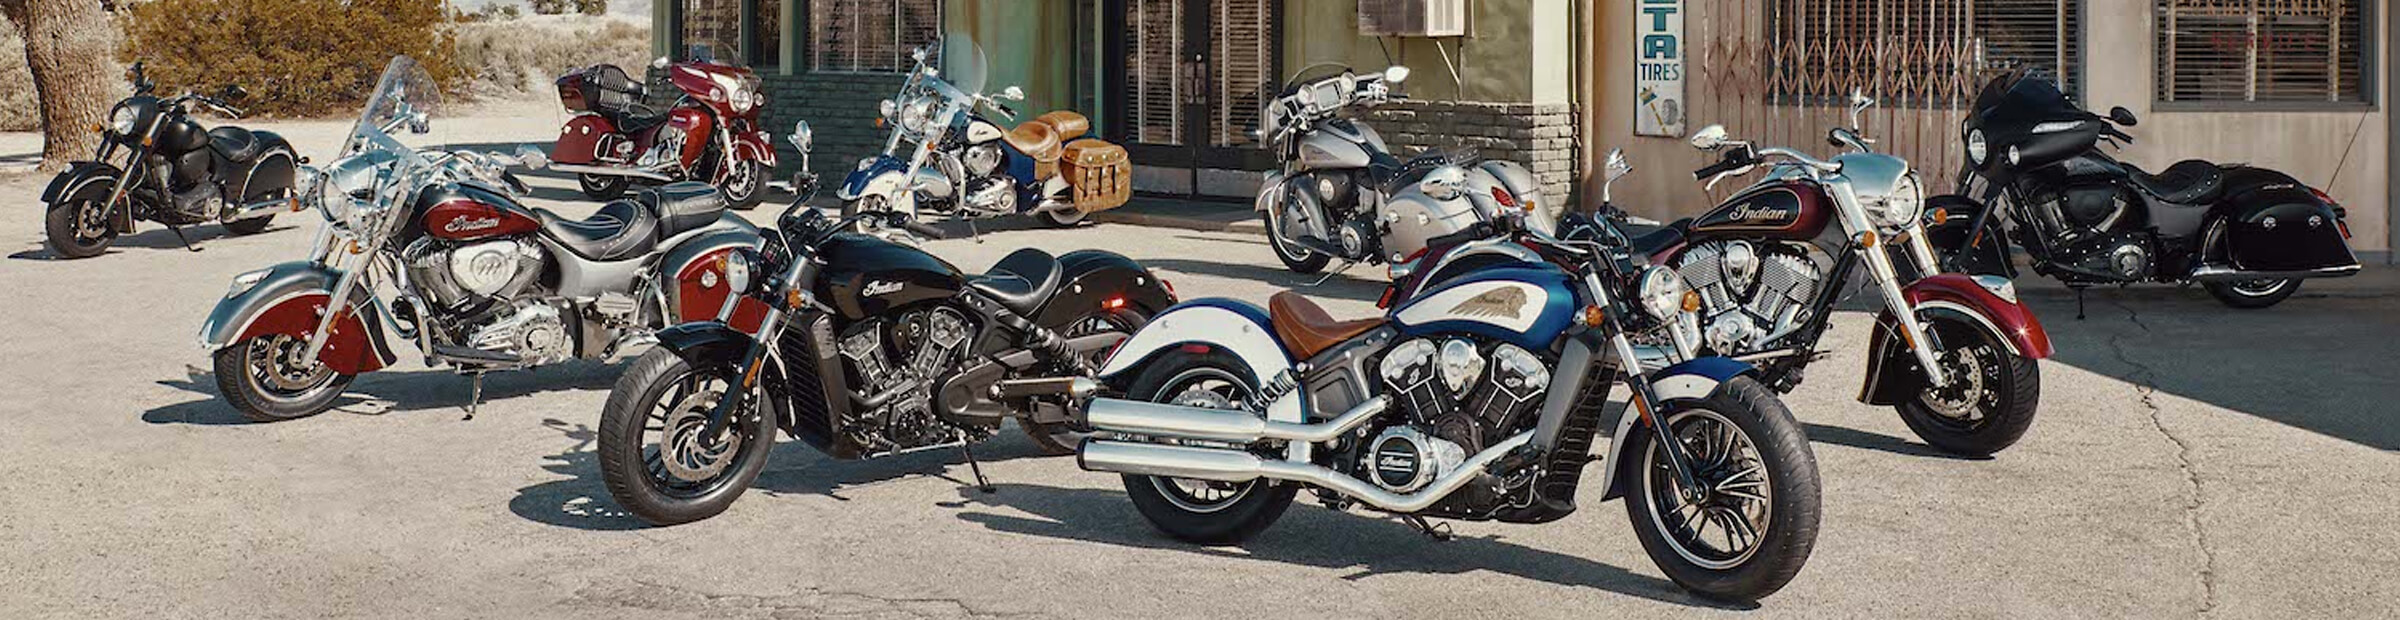 2019 Indian Motorcycles